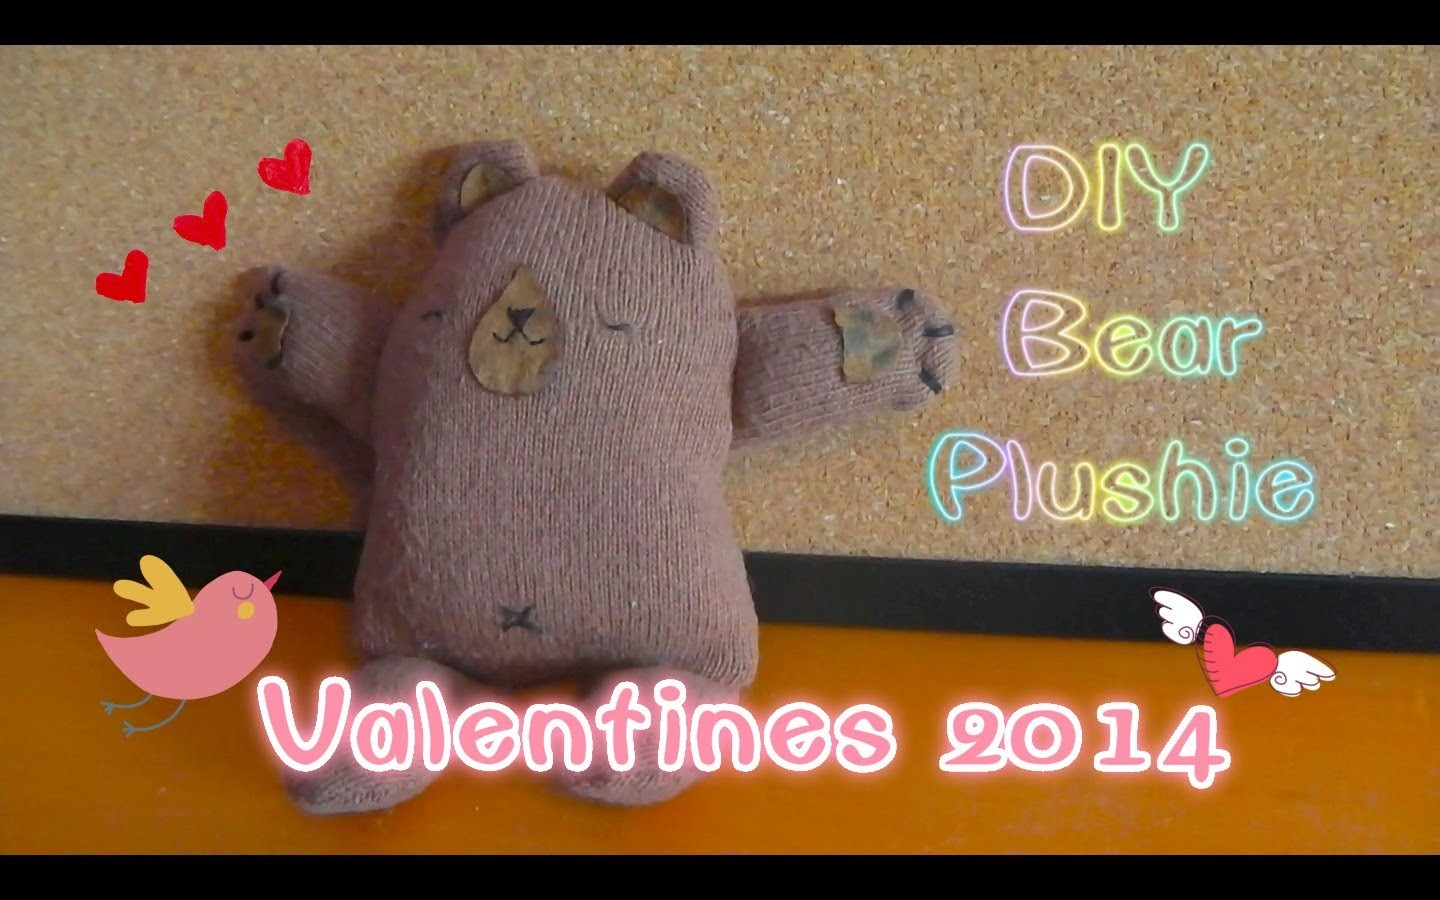 ✄Easy DIY✄ ❤Gift Idea❤ DIY Bear Plushie for Valentines 2014 [Gifts for him]